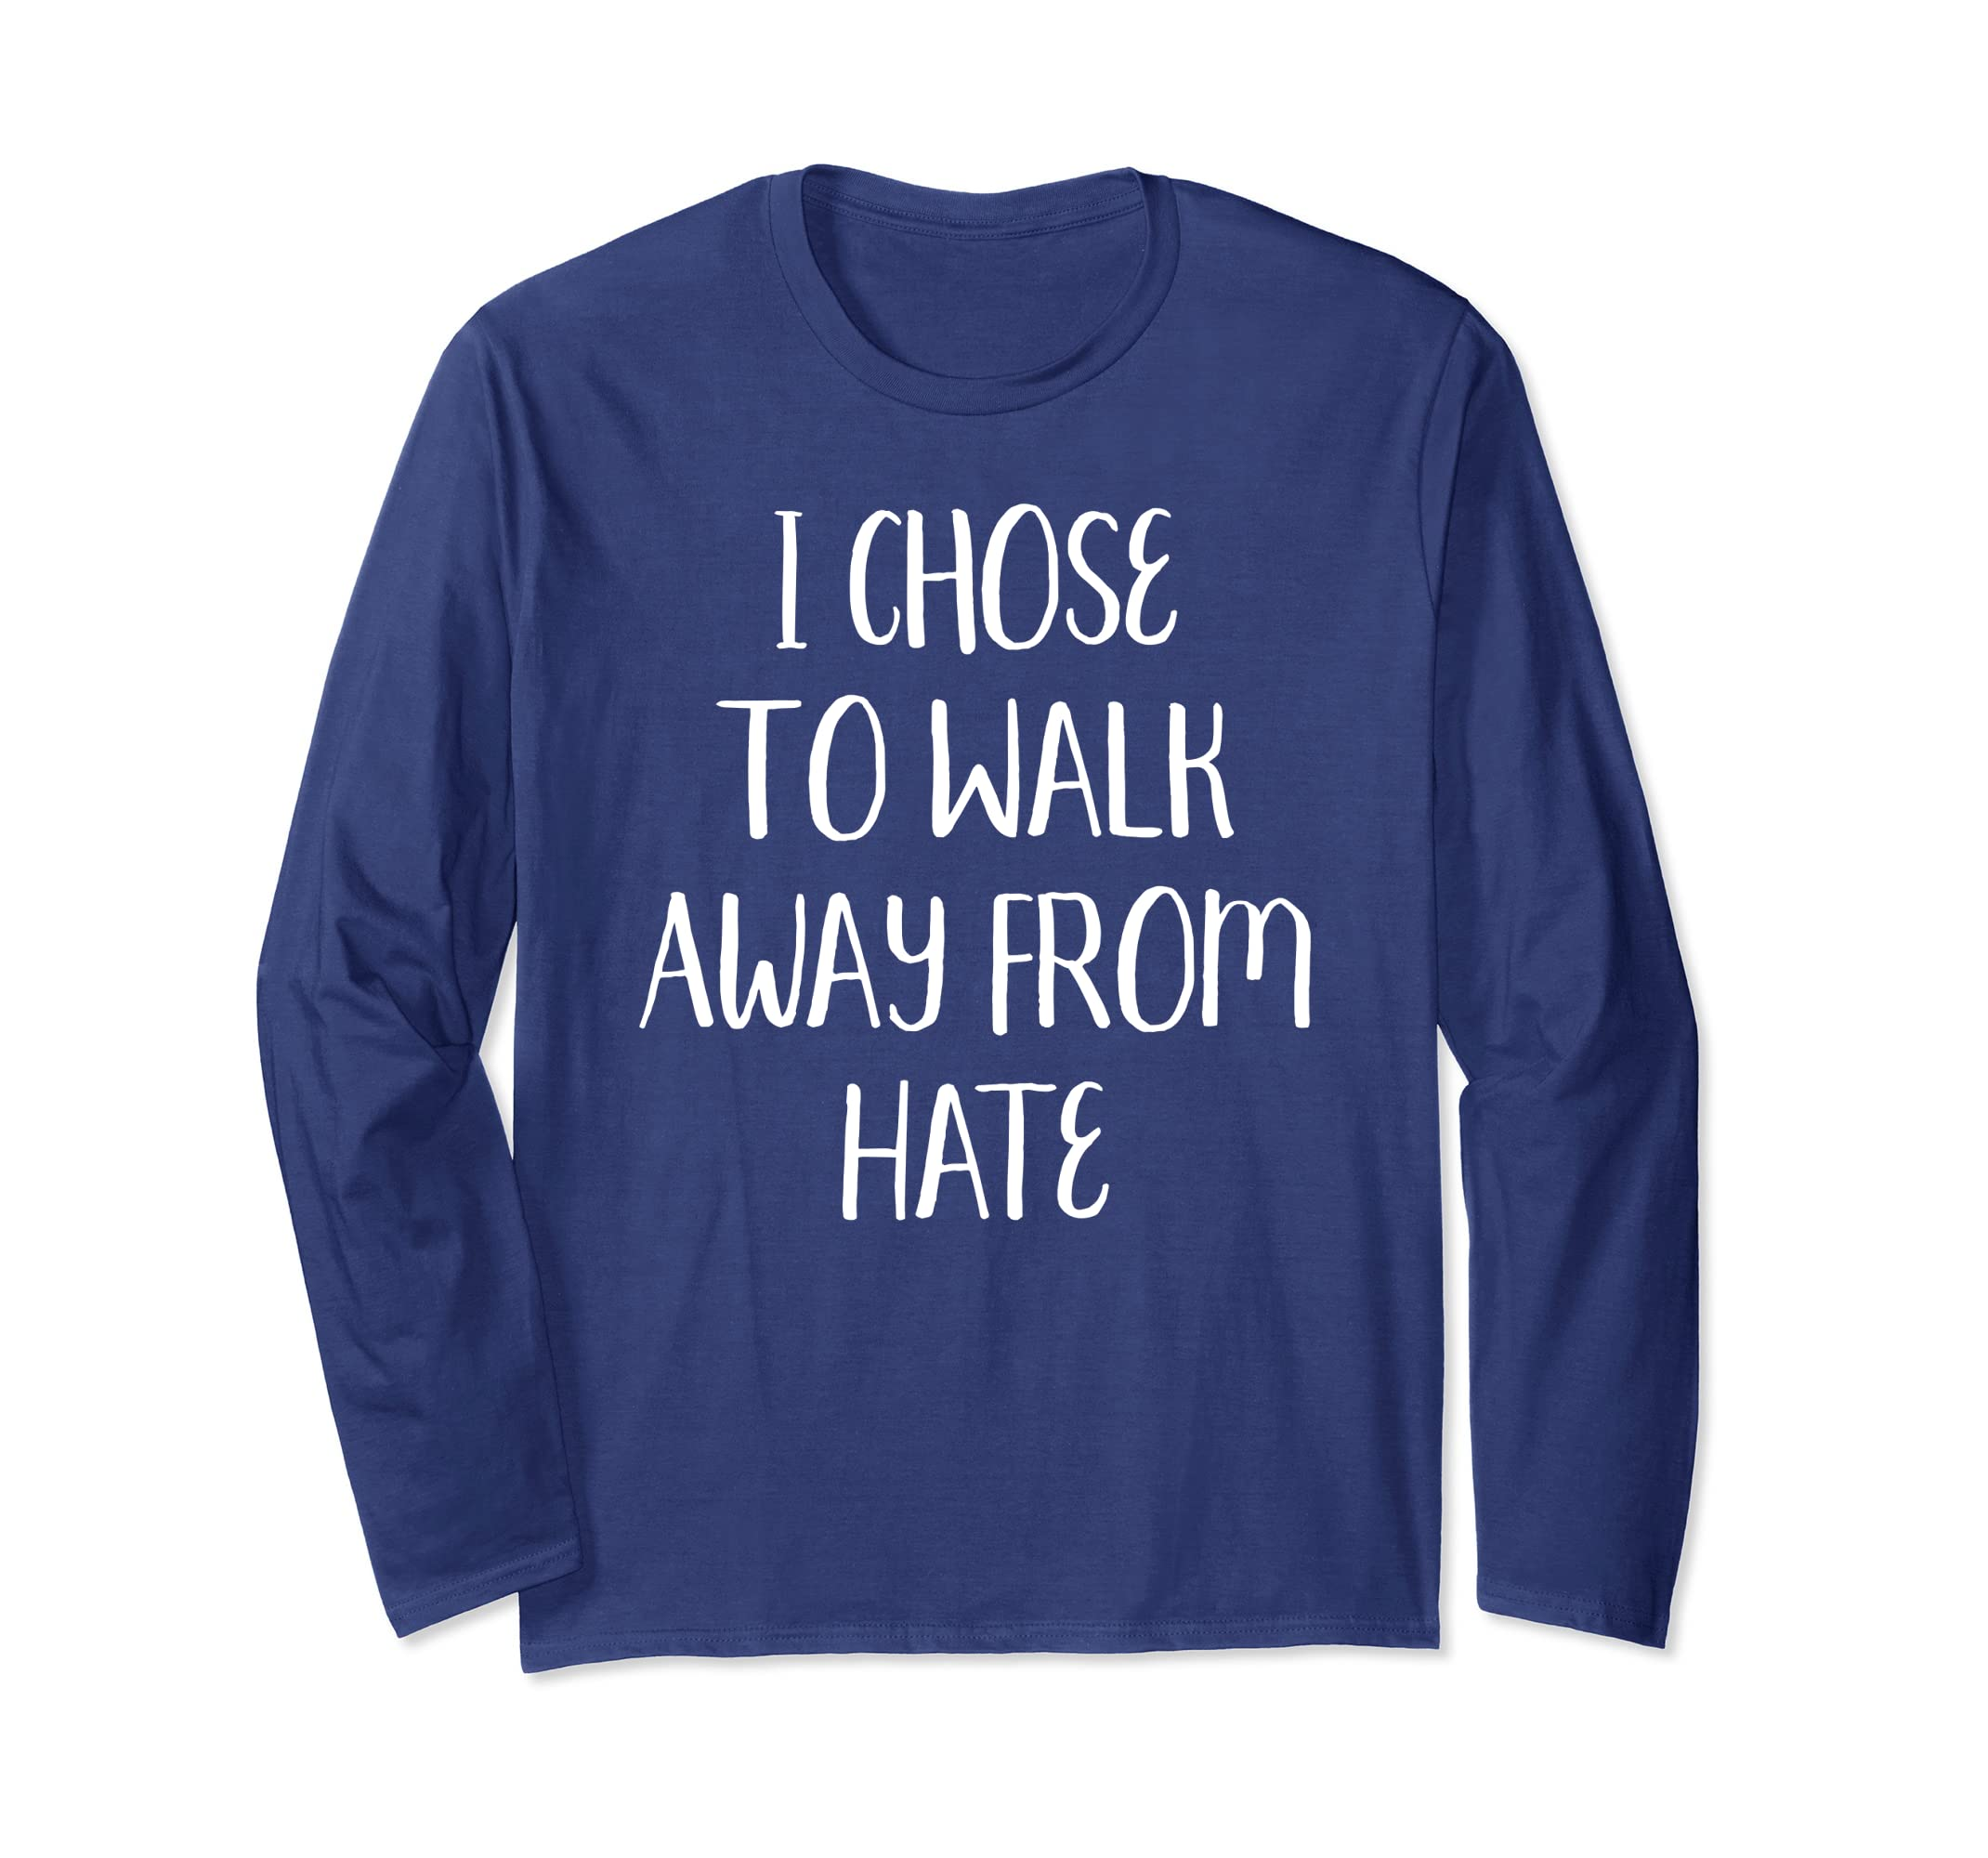 Walk Away from Hate No Hate Hashtag Rally Long Sleeve tShirt-ln